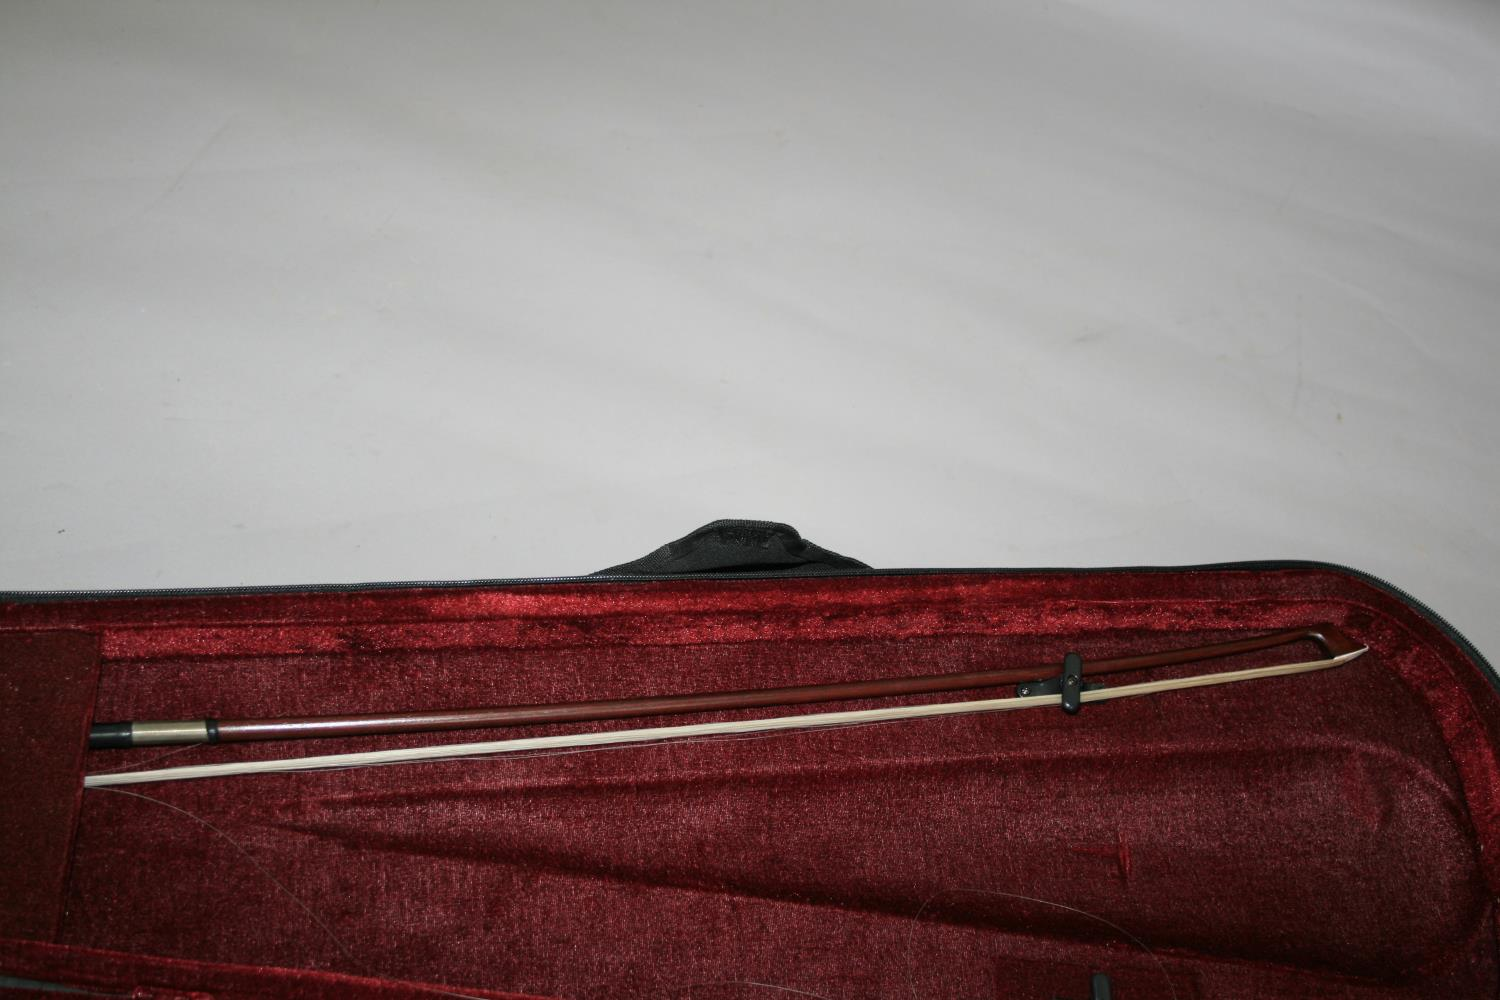 Quality cased violin Teller of Germany. 25W x 70 H. - Image 3 of 3